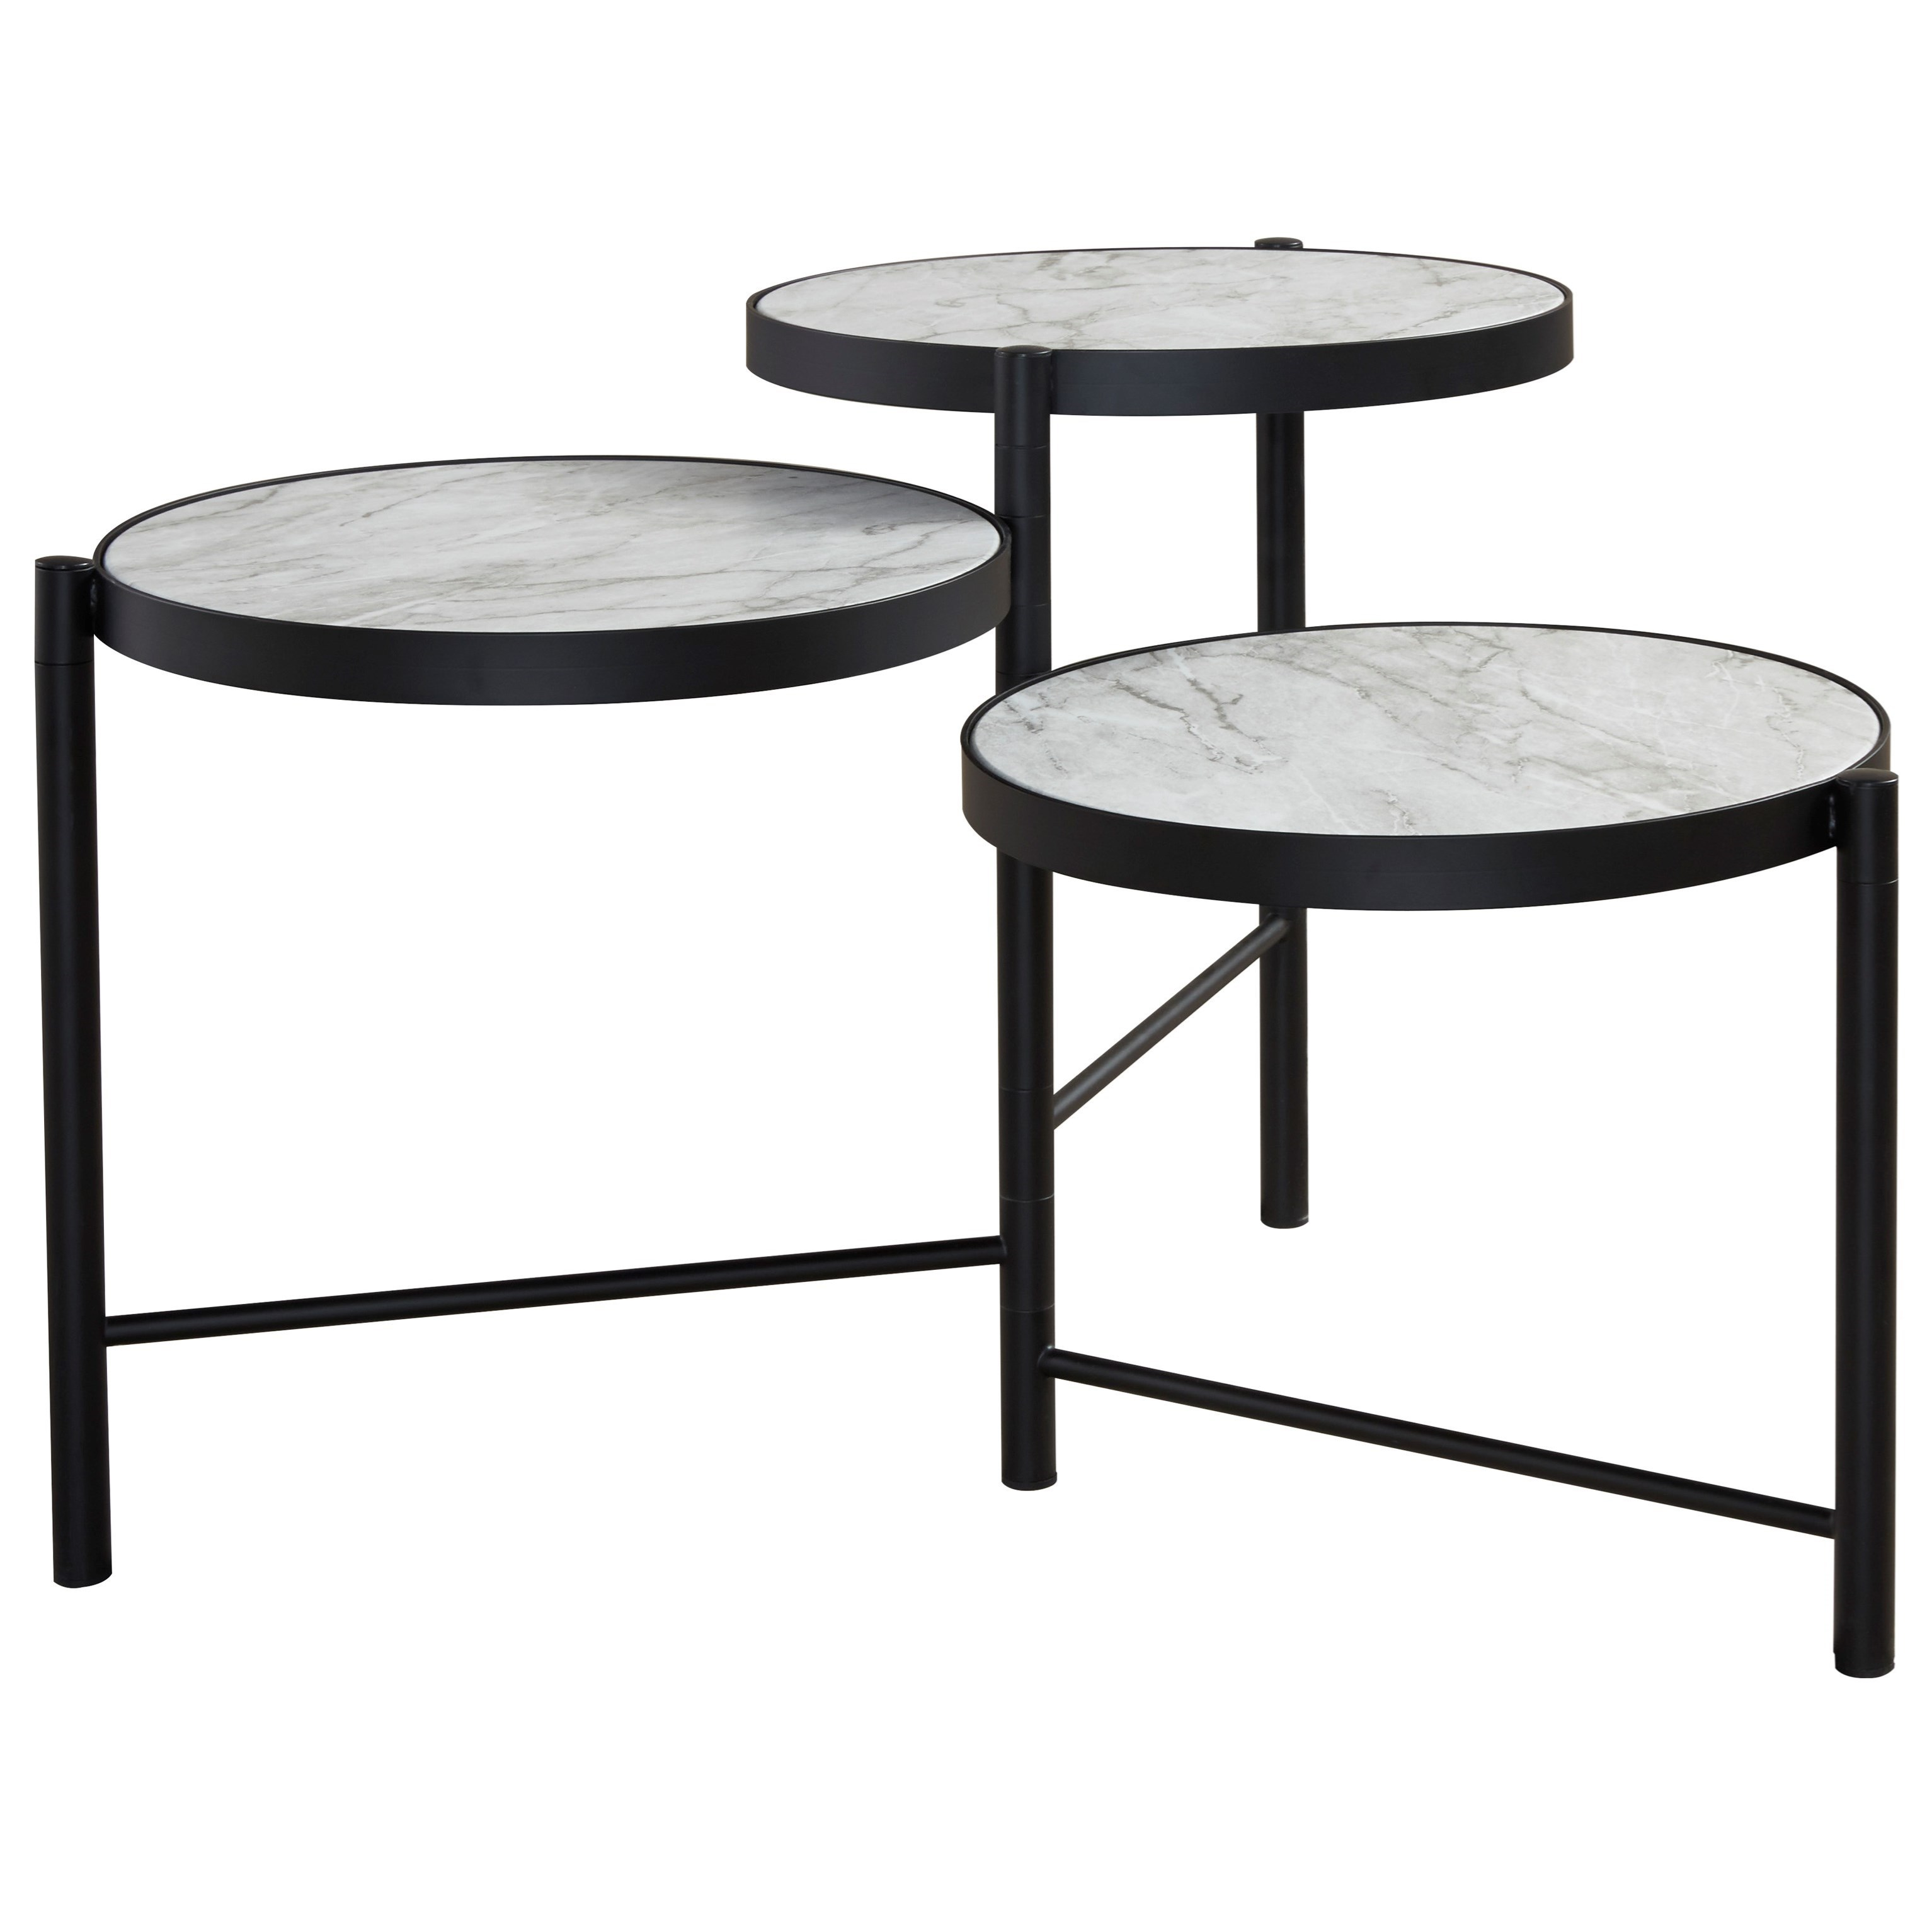 Plannore Round Cocktail Table by Signature Design by Ashley at HomeWorld Furniture